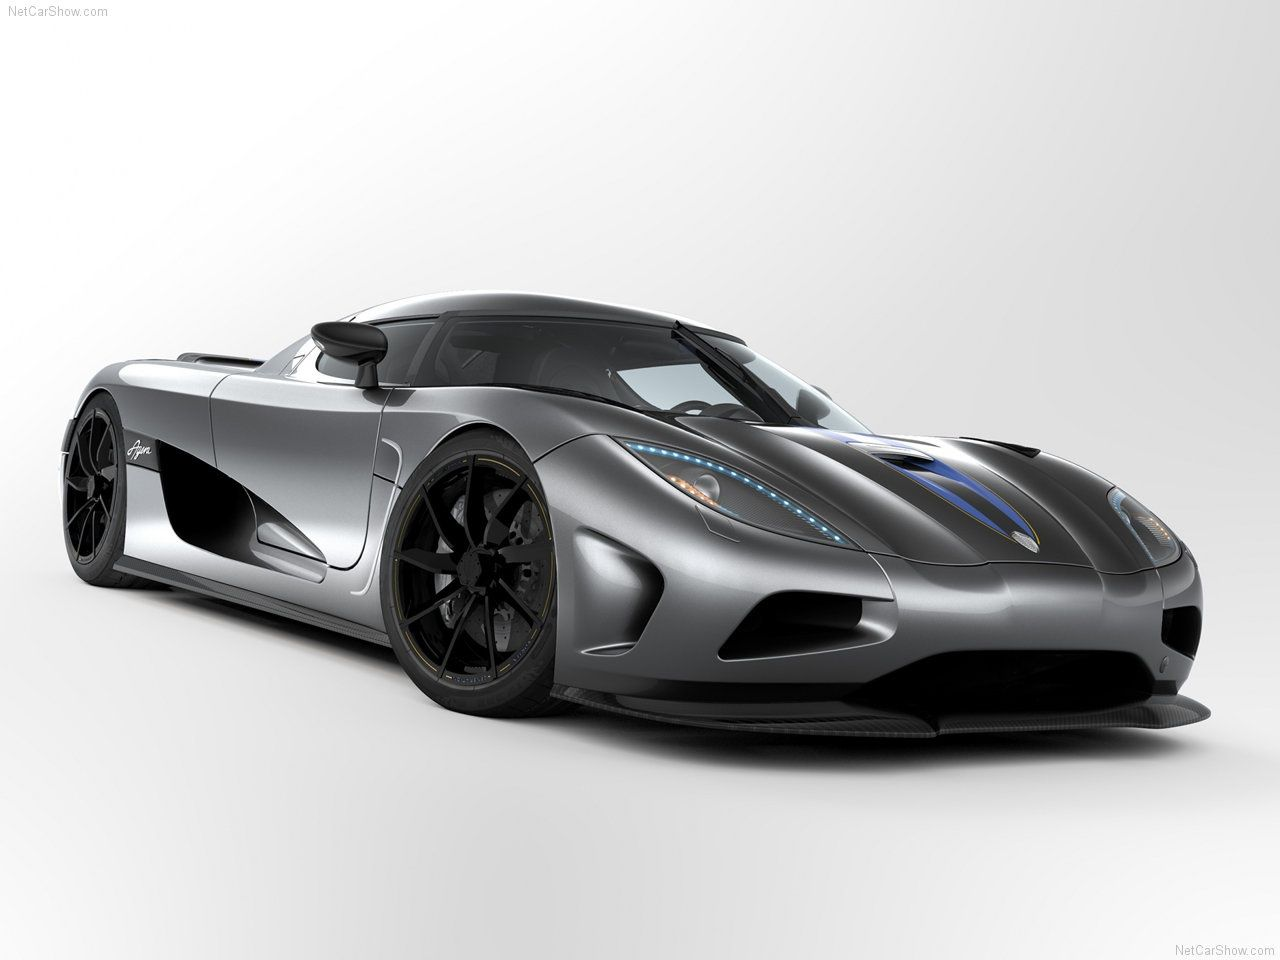 Koenigsegg Agera Sportscar To Be Imported To US By June